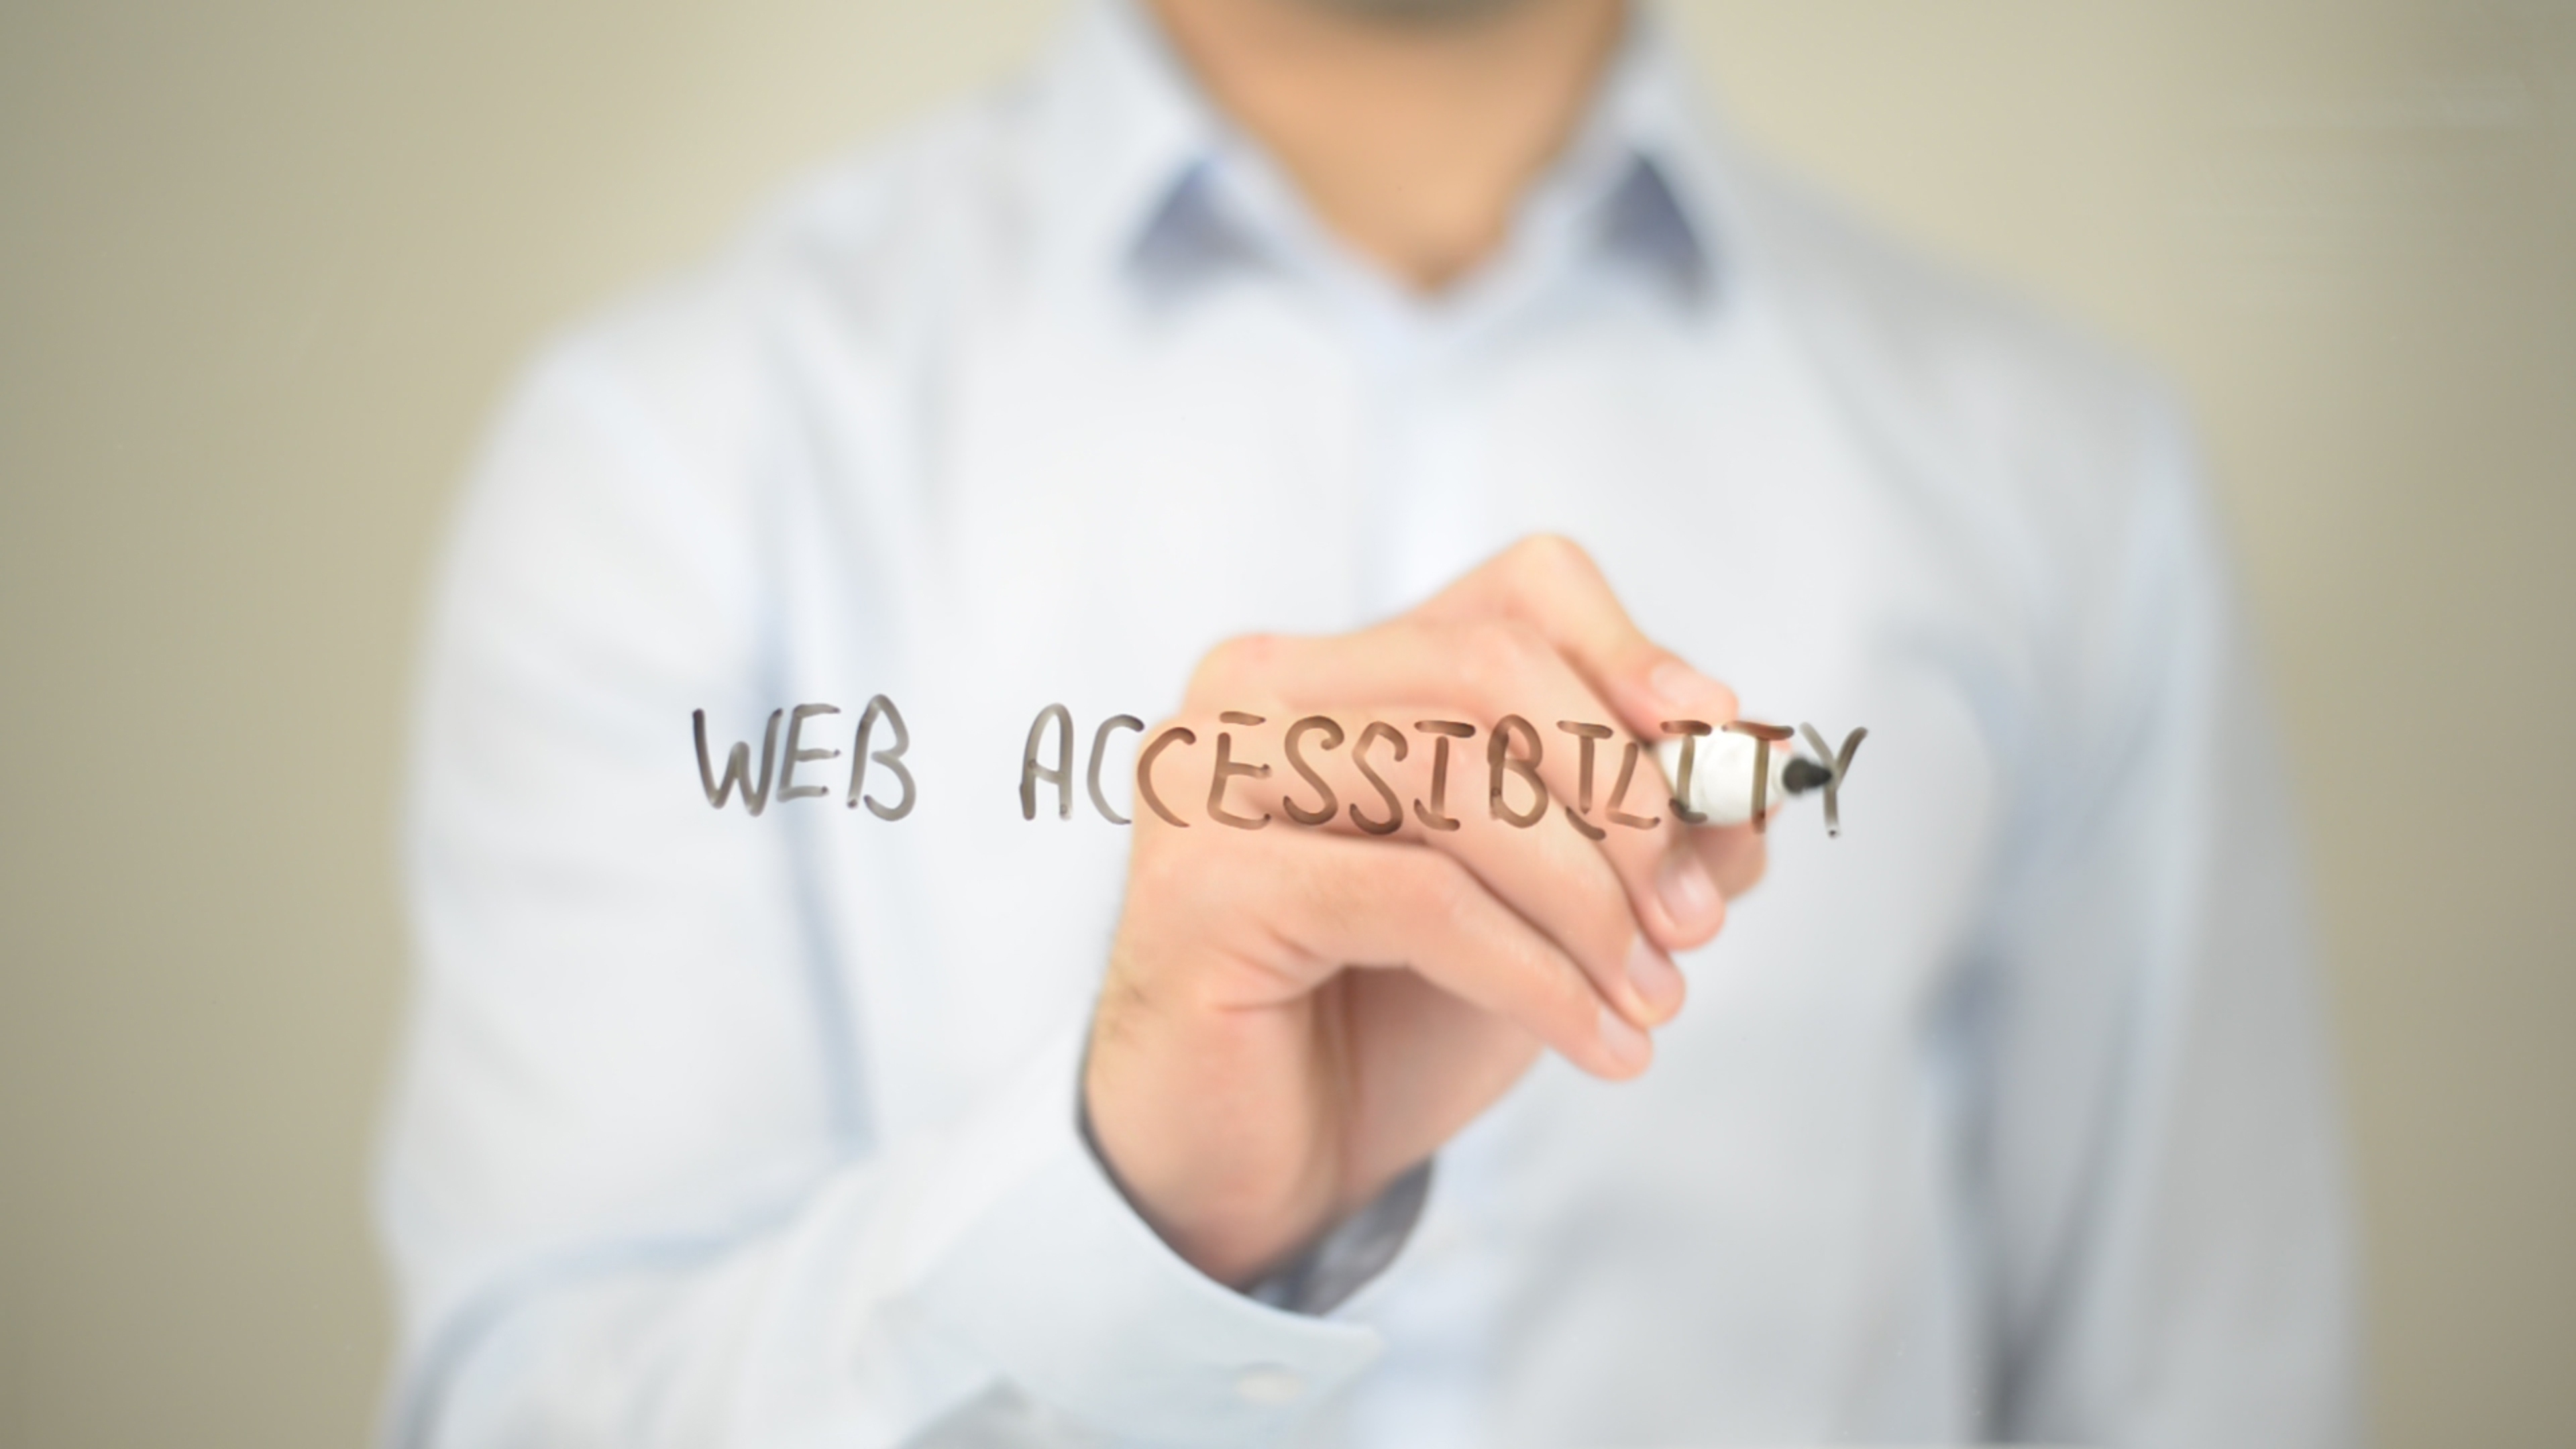 Are you writing for accessibility?